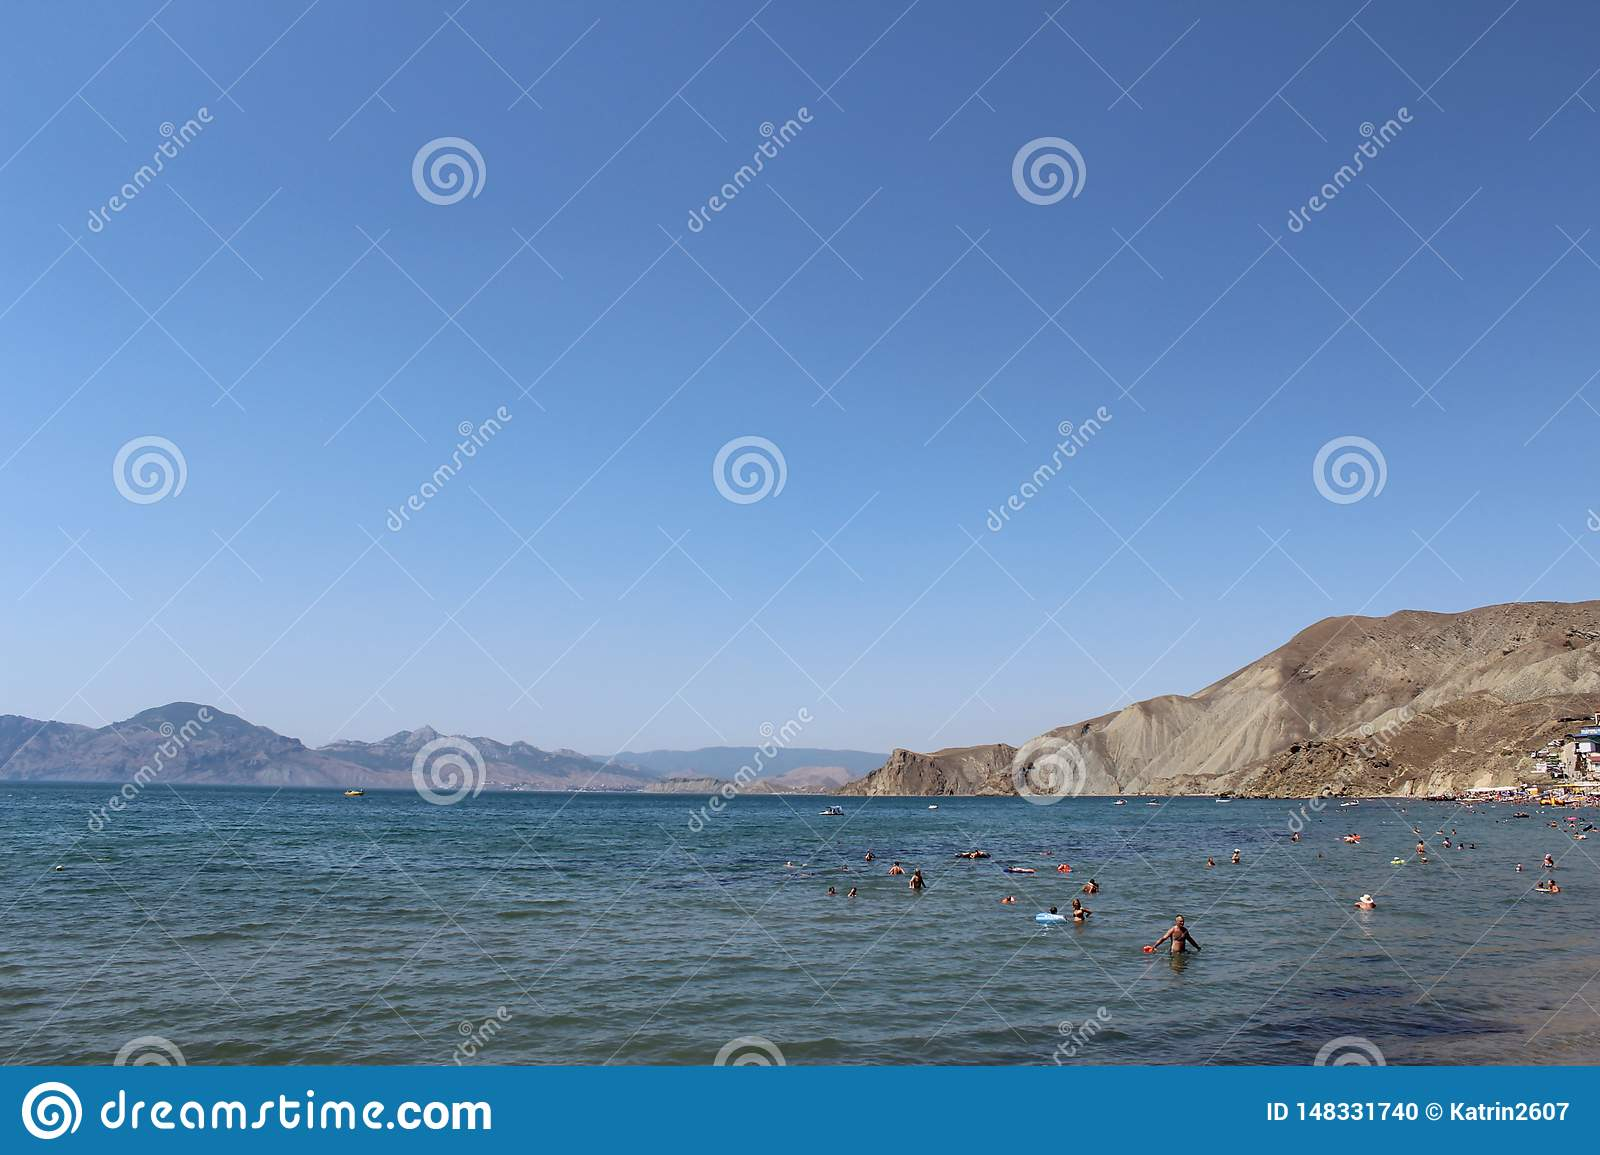 People relax on the sea in Crimea